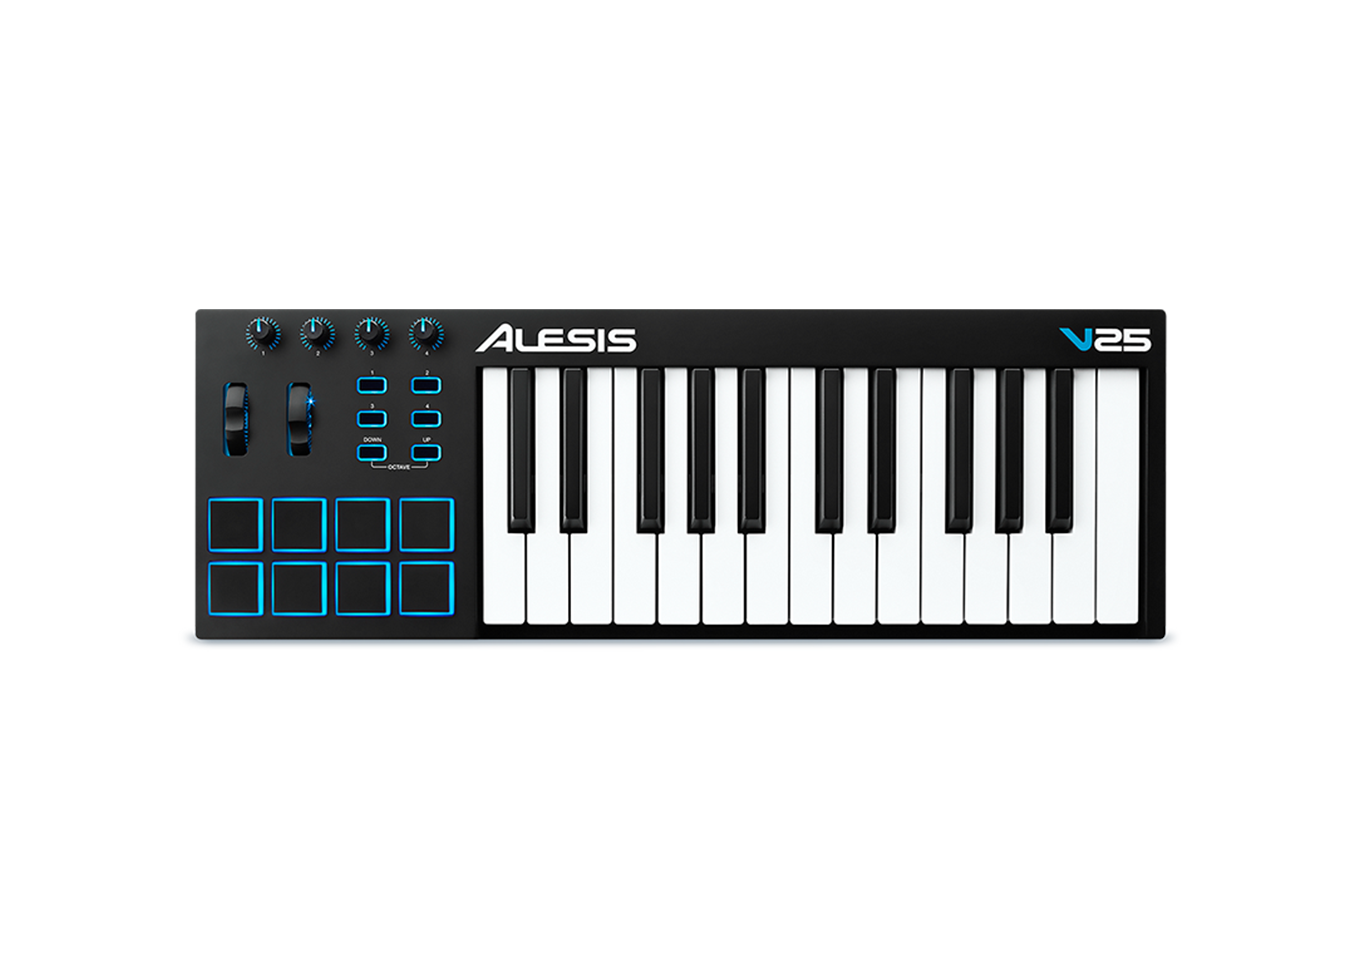 Alesis V25 USB-MIDI Keyboard Controller: Click for more info